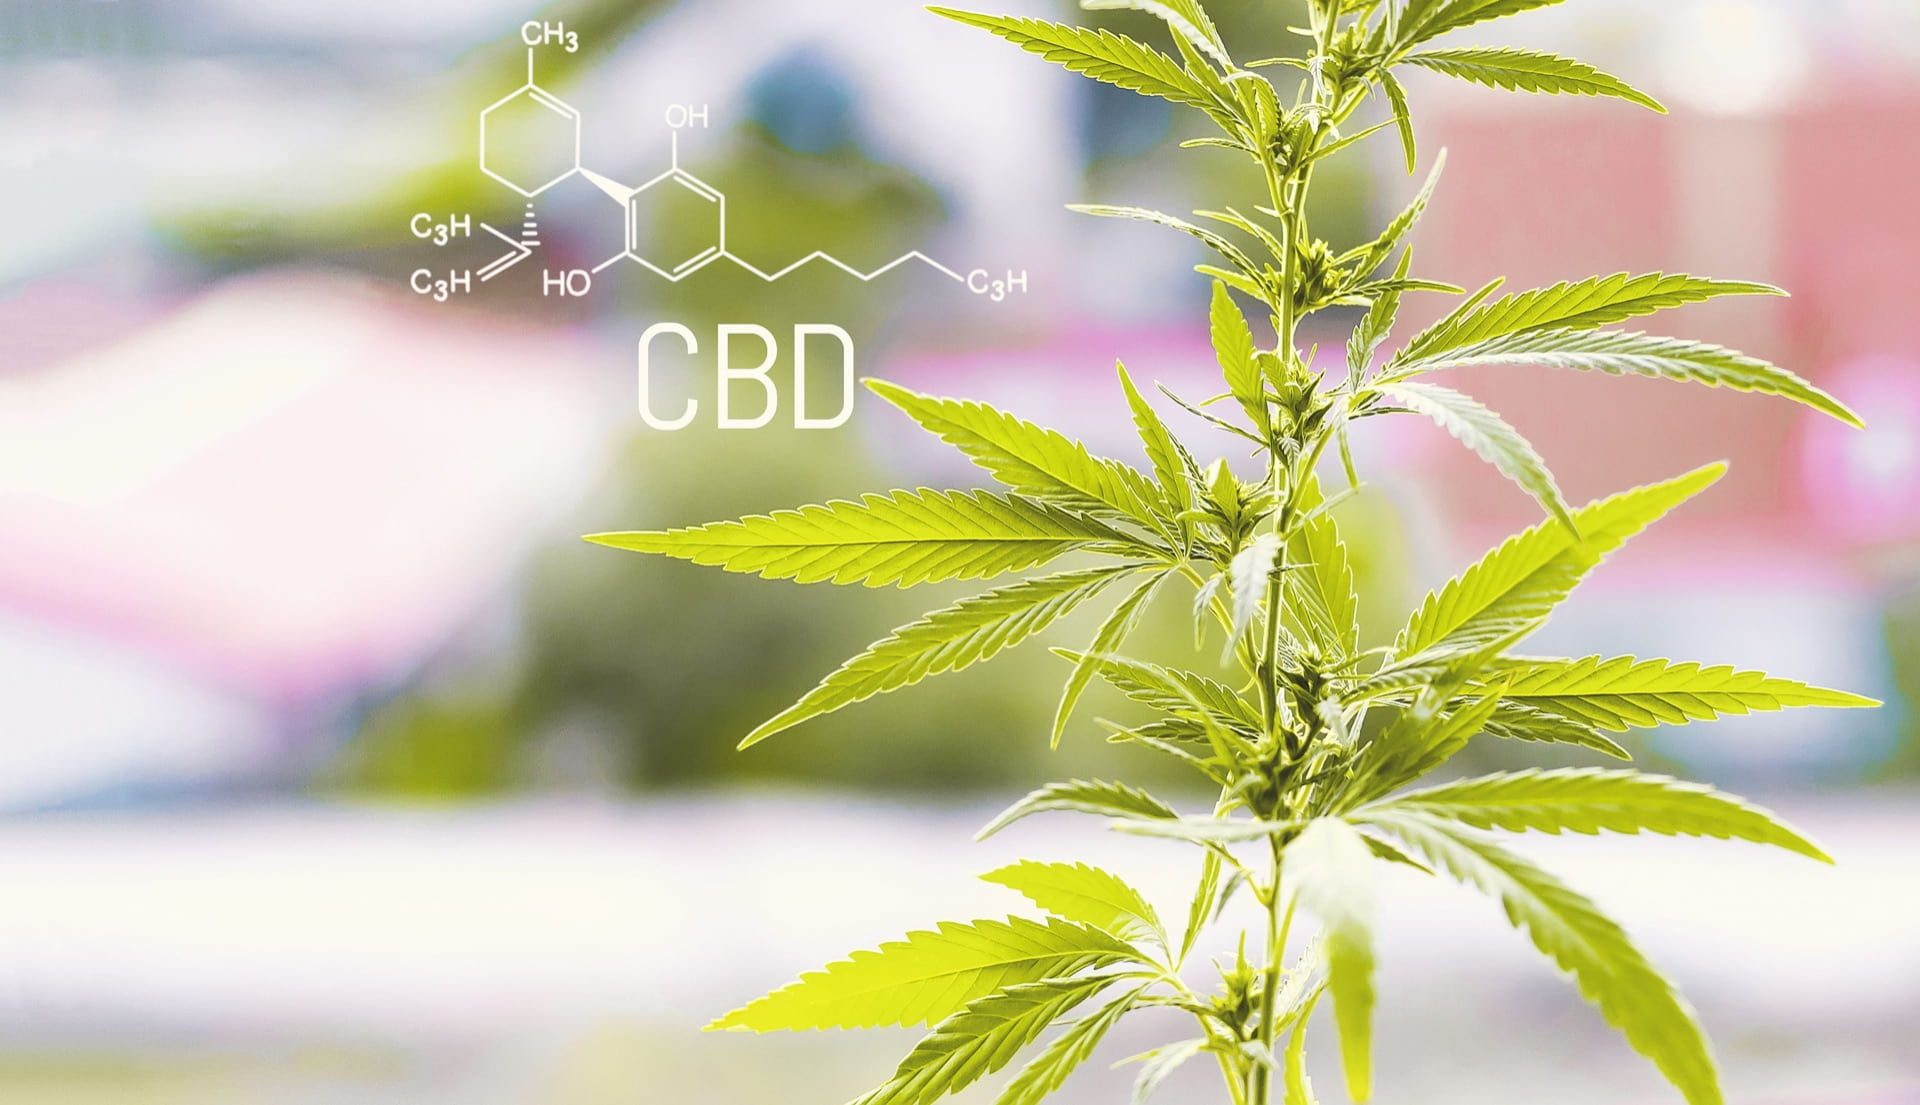 photo of marijuana plant, with chemical structure of CBD noted.